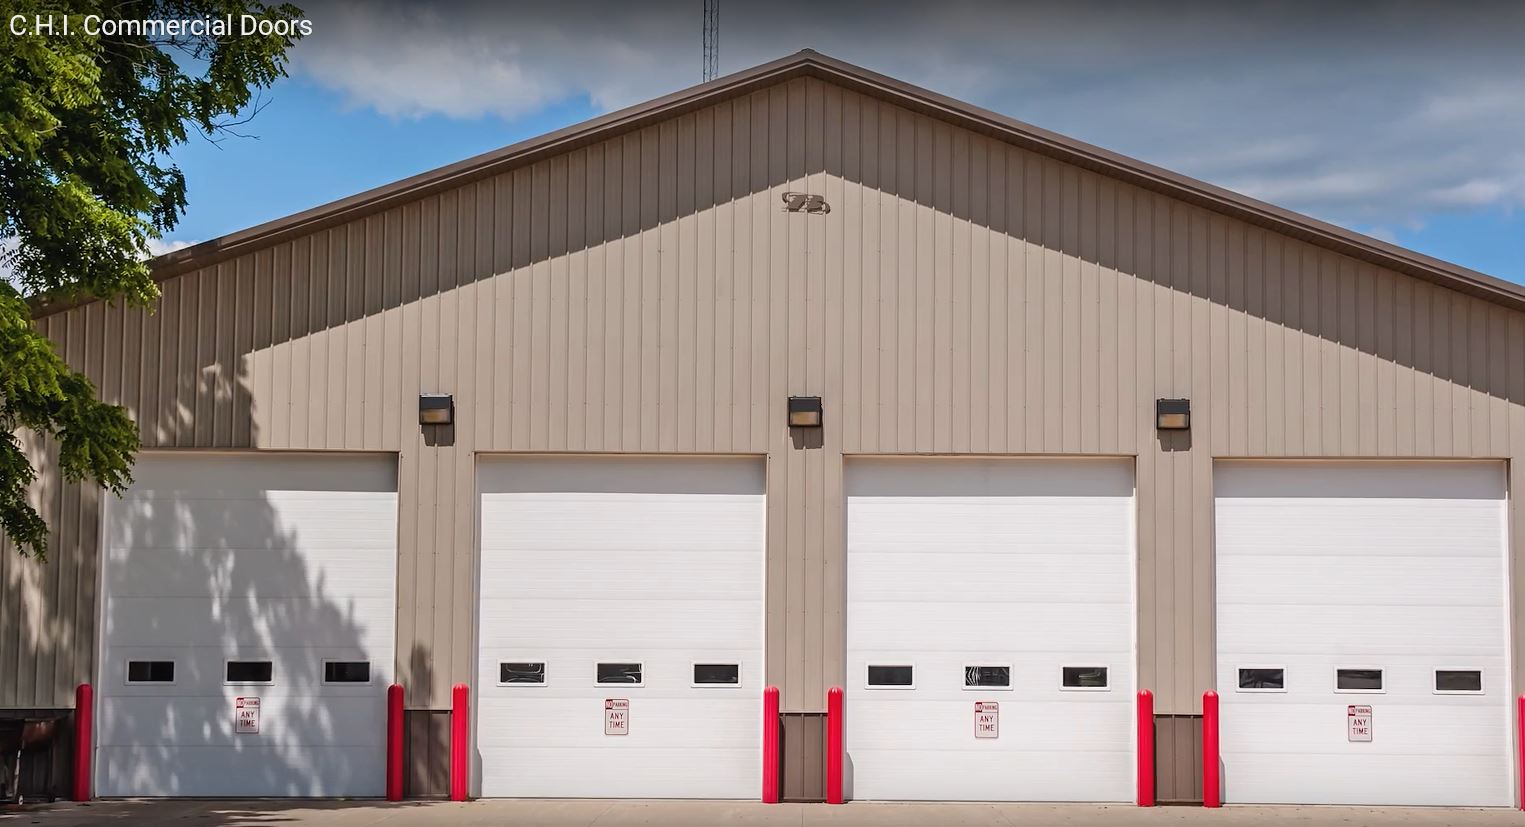 encore garage pass products doors w door edmonton series overhead specialty for commercial